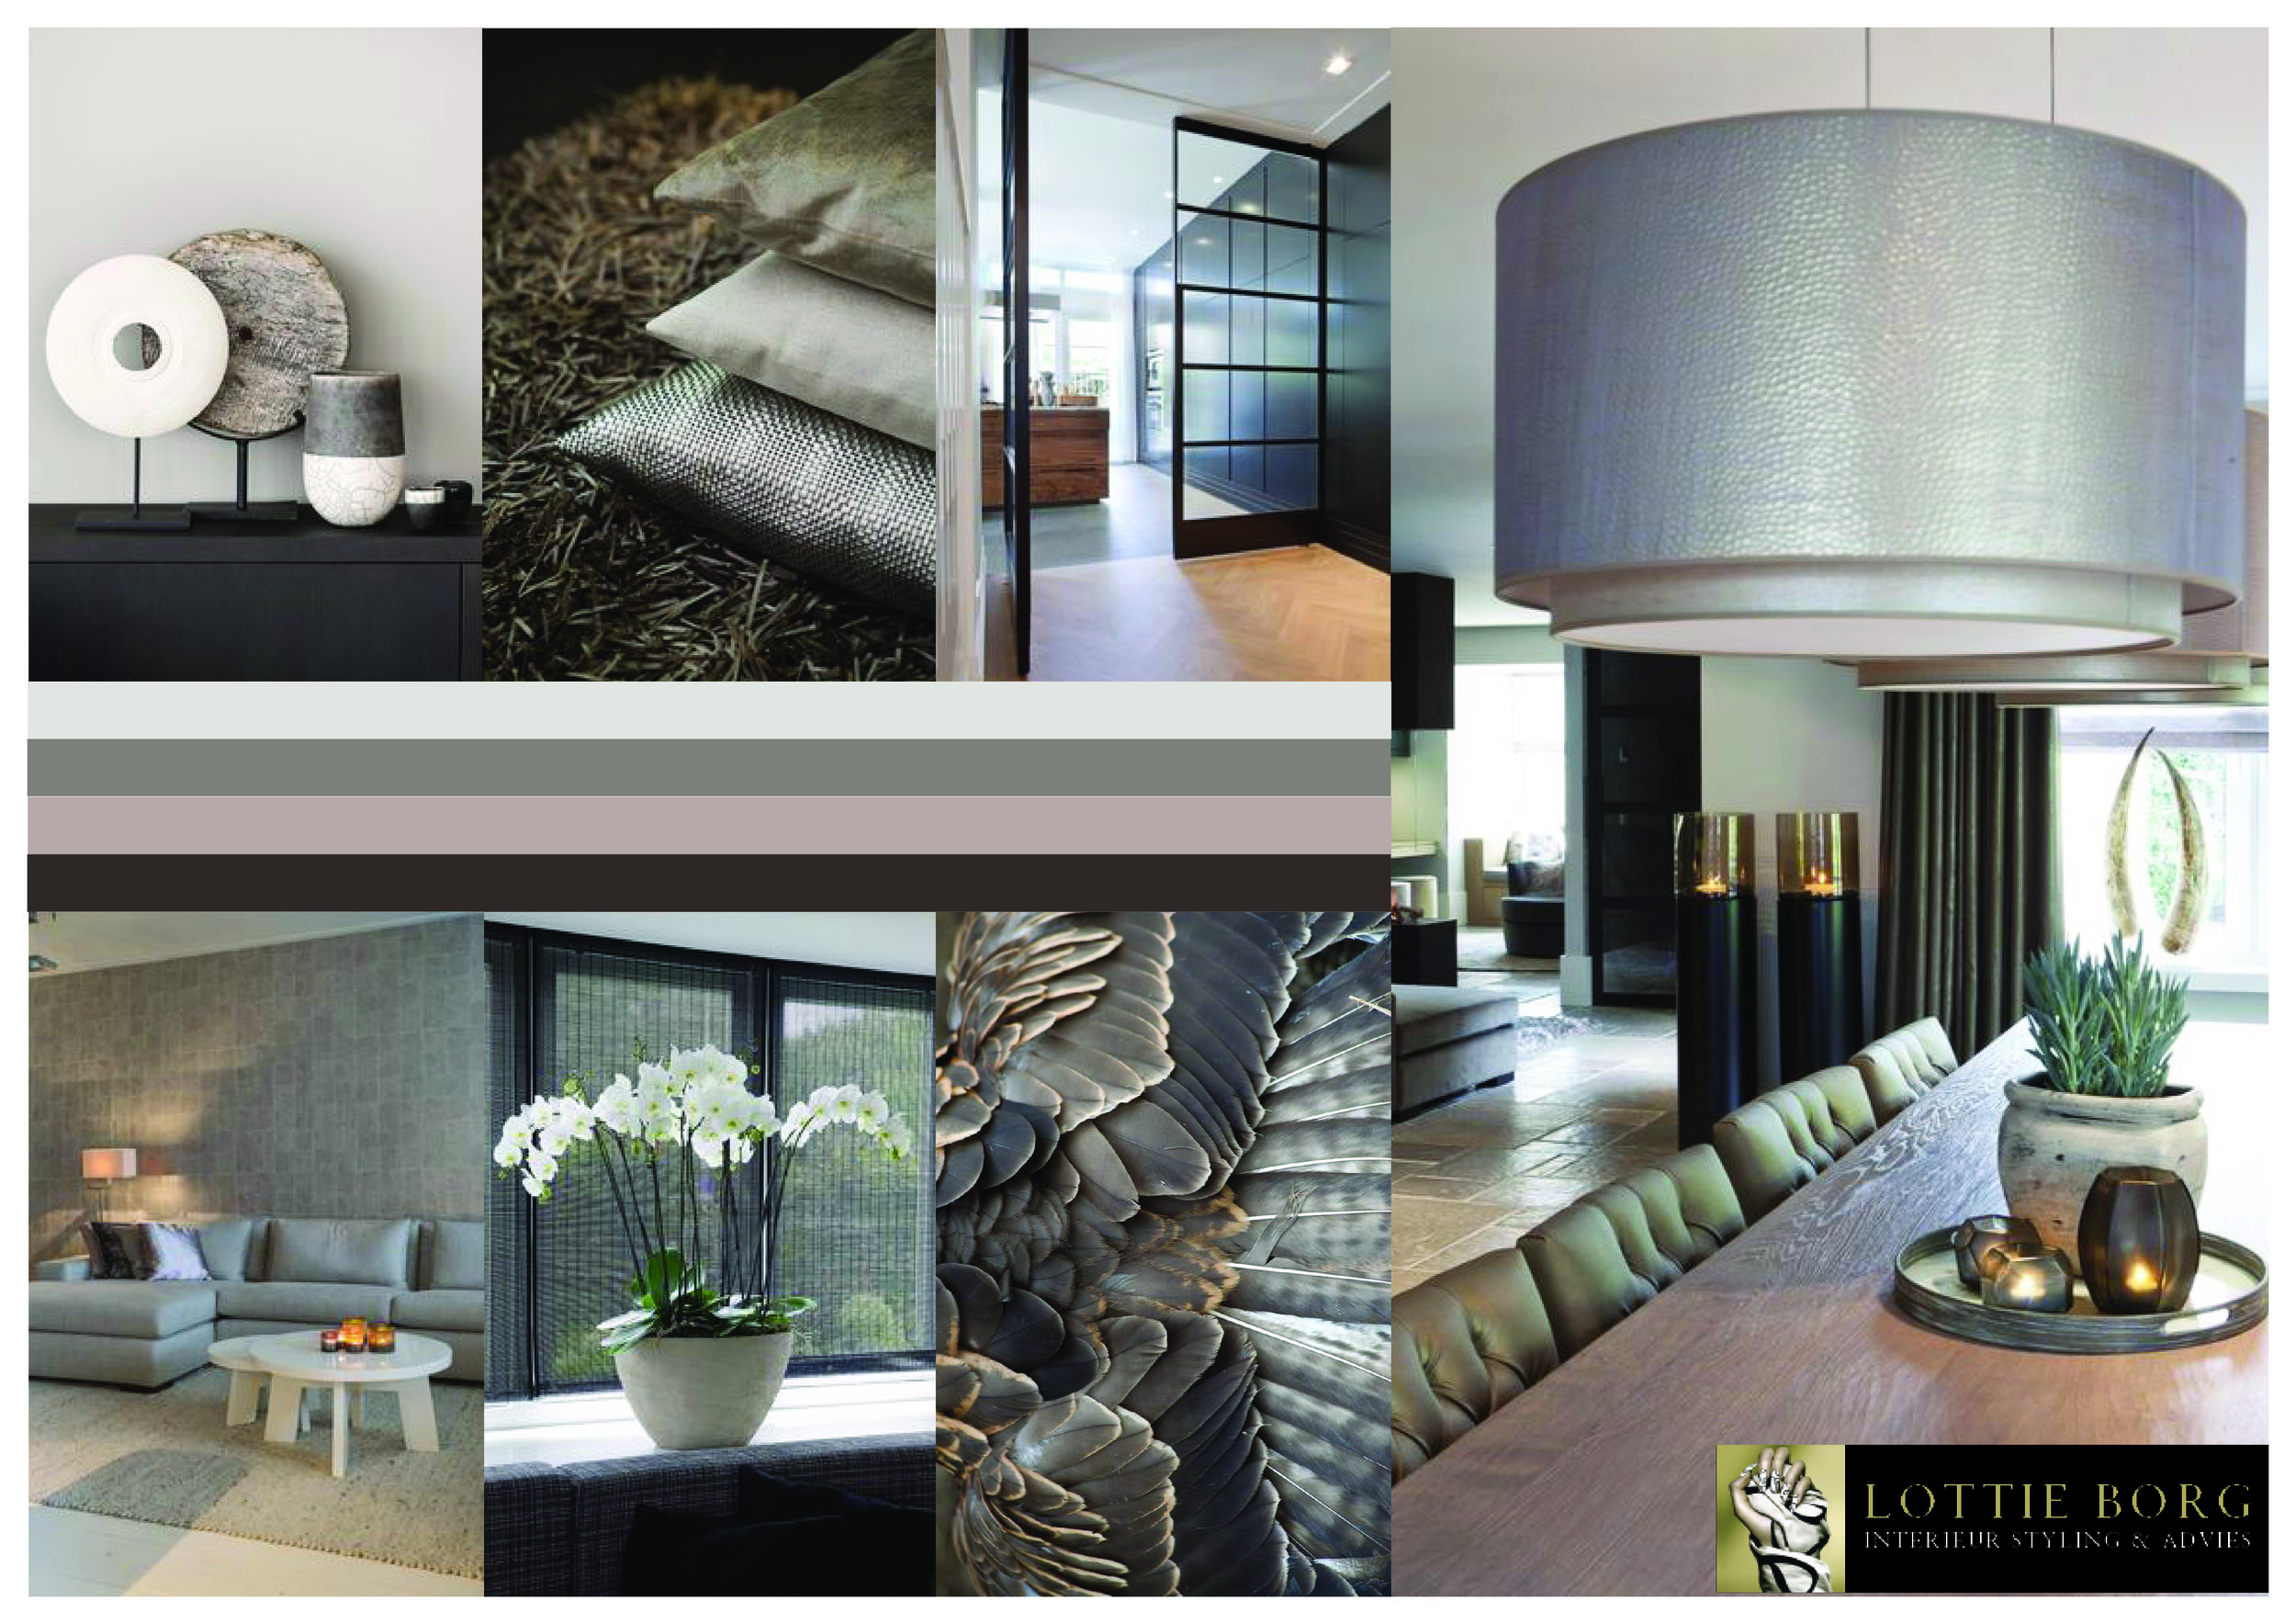 Collage Ina Hoorn-page-0.jpg